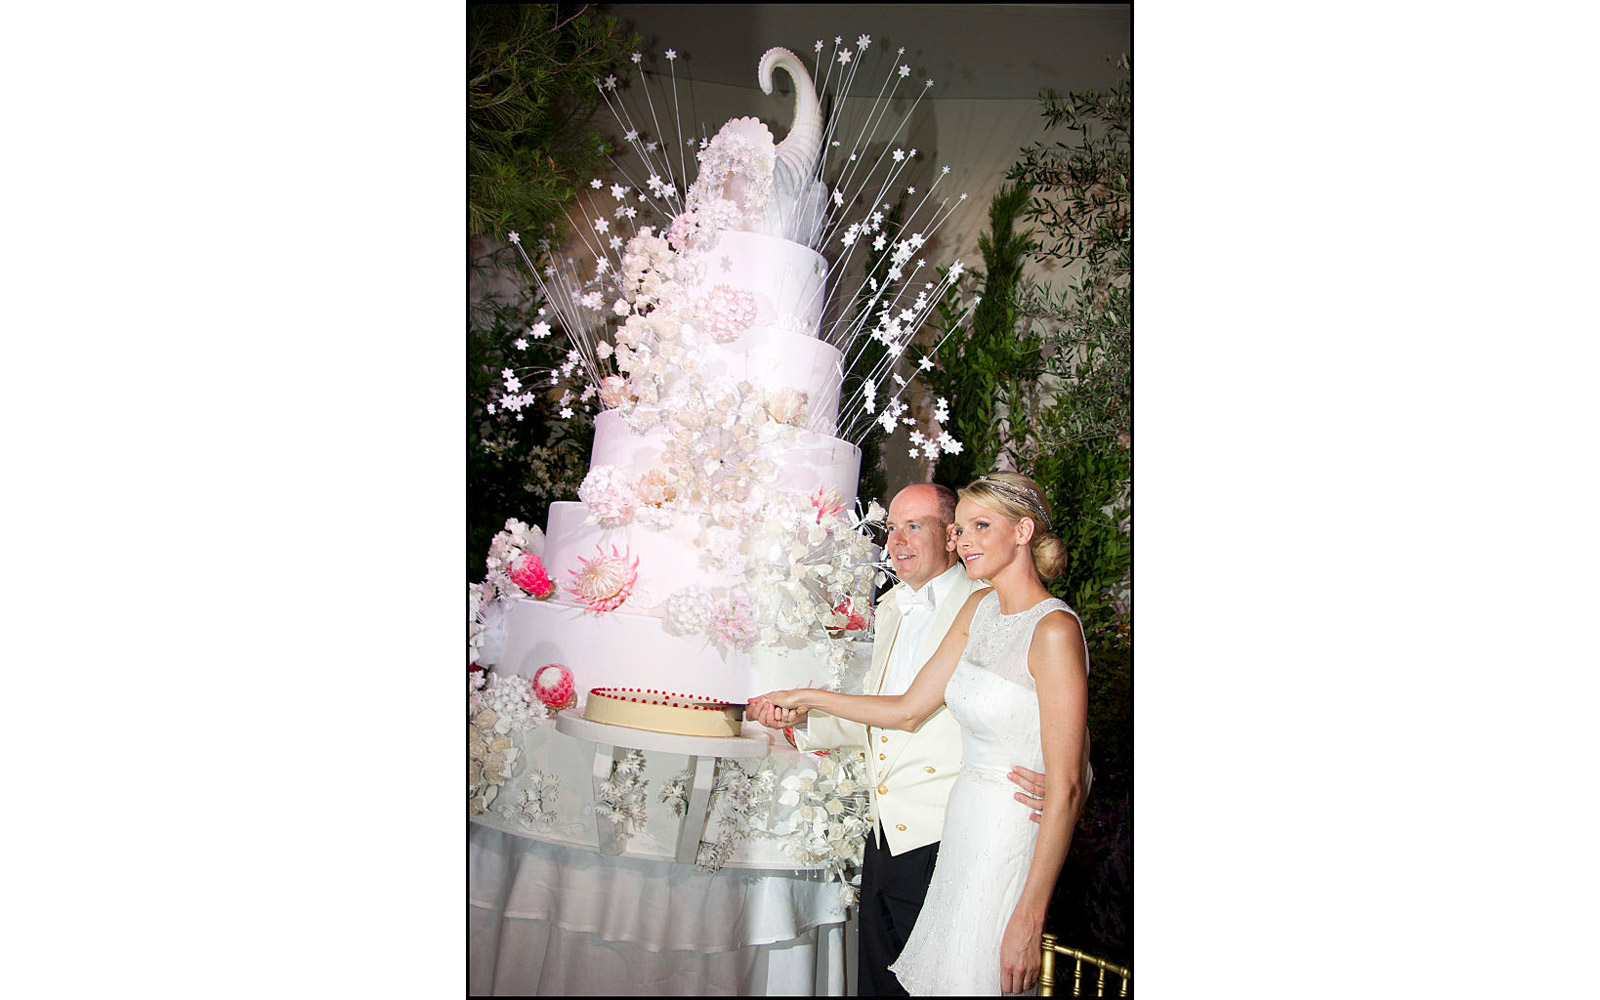 Prince Albert II of Monaco and Princess Charlene of Monaco cut the wedding cake during the dinner at Opera terraces